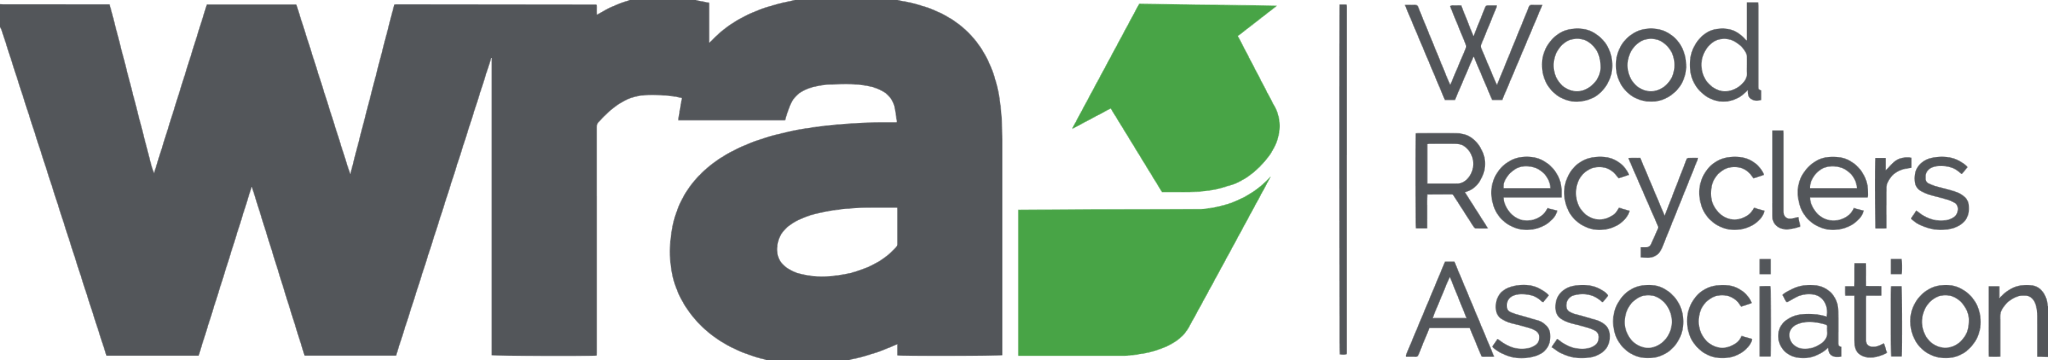 Wood Recyclers Association